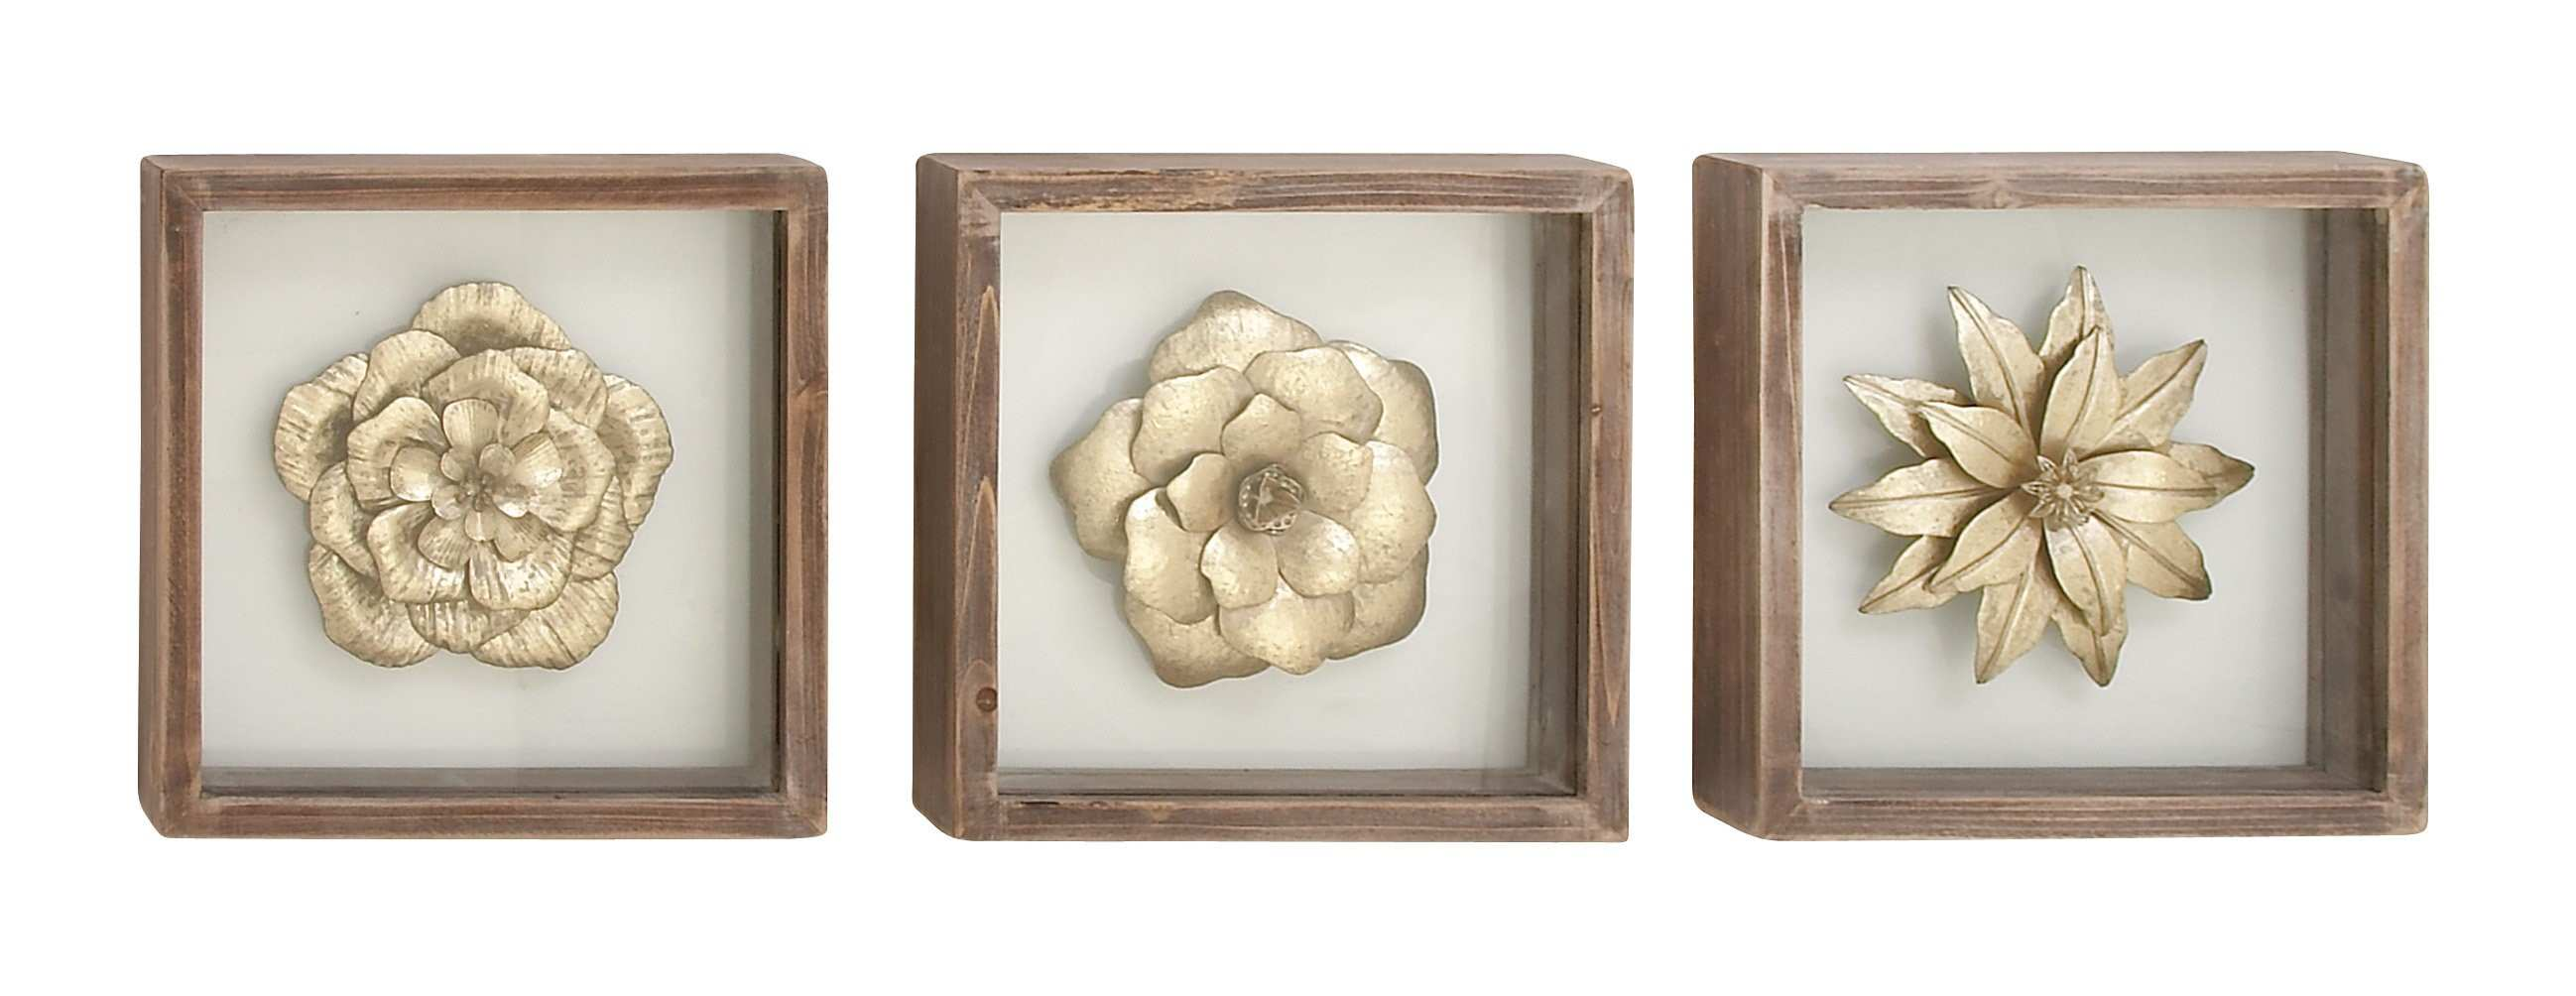 Bungalow Rose 3 Piece Metal and Wood Wall Décor Set & Reviews